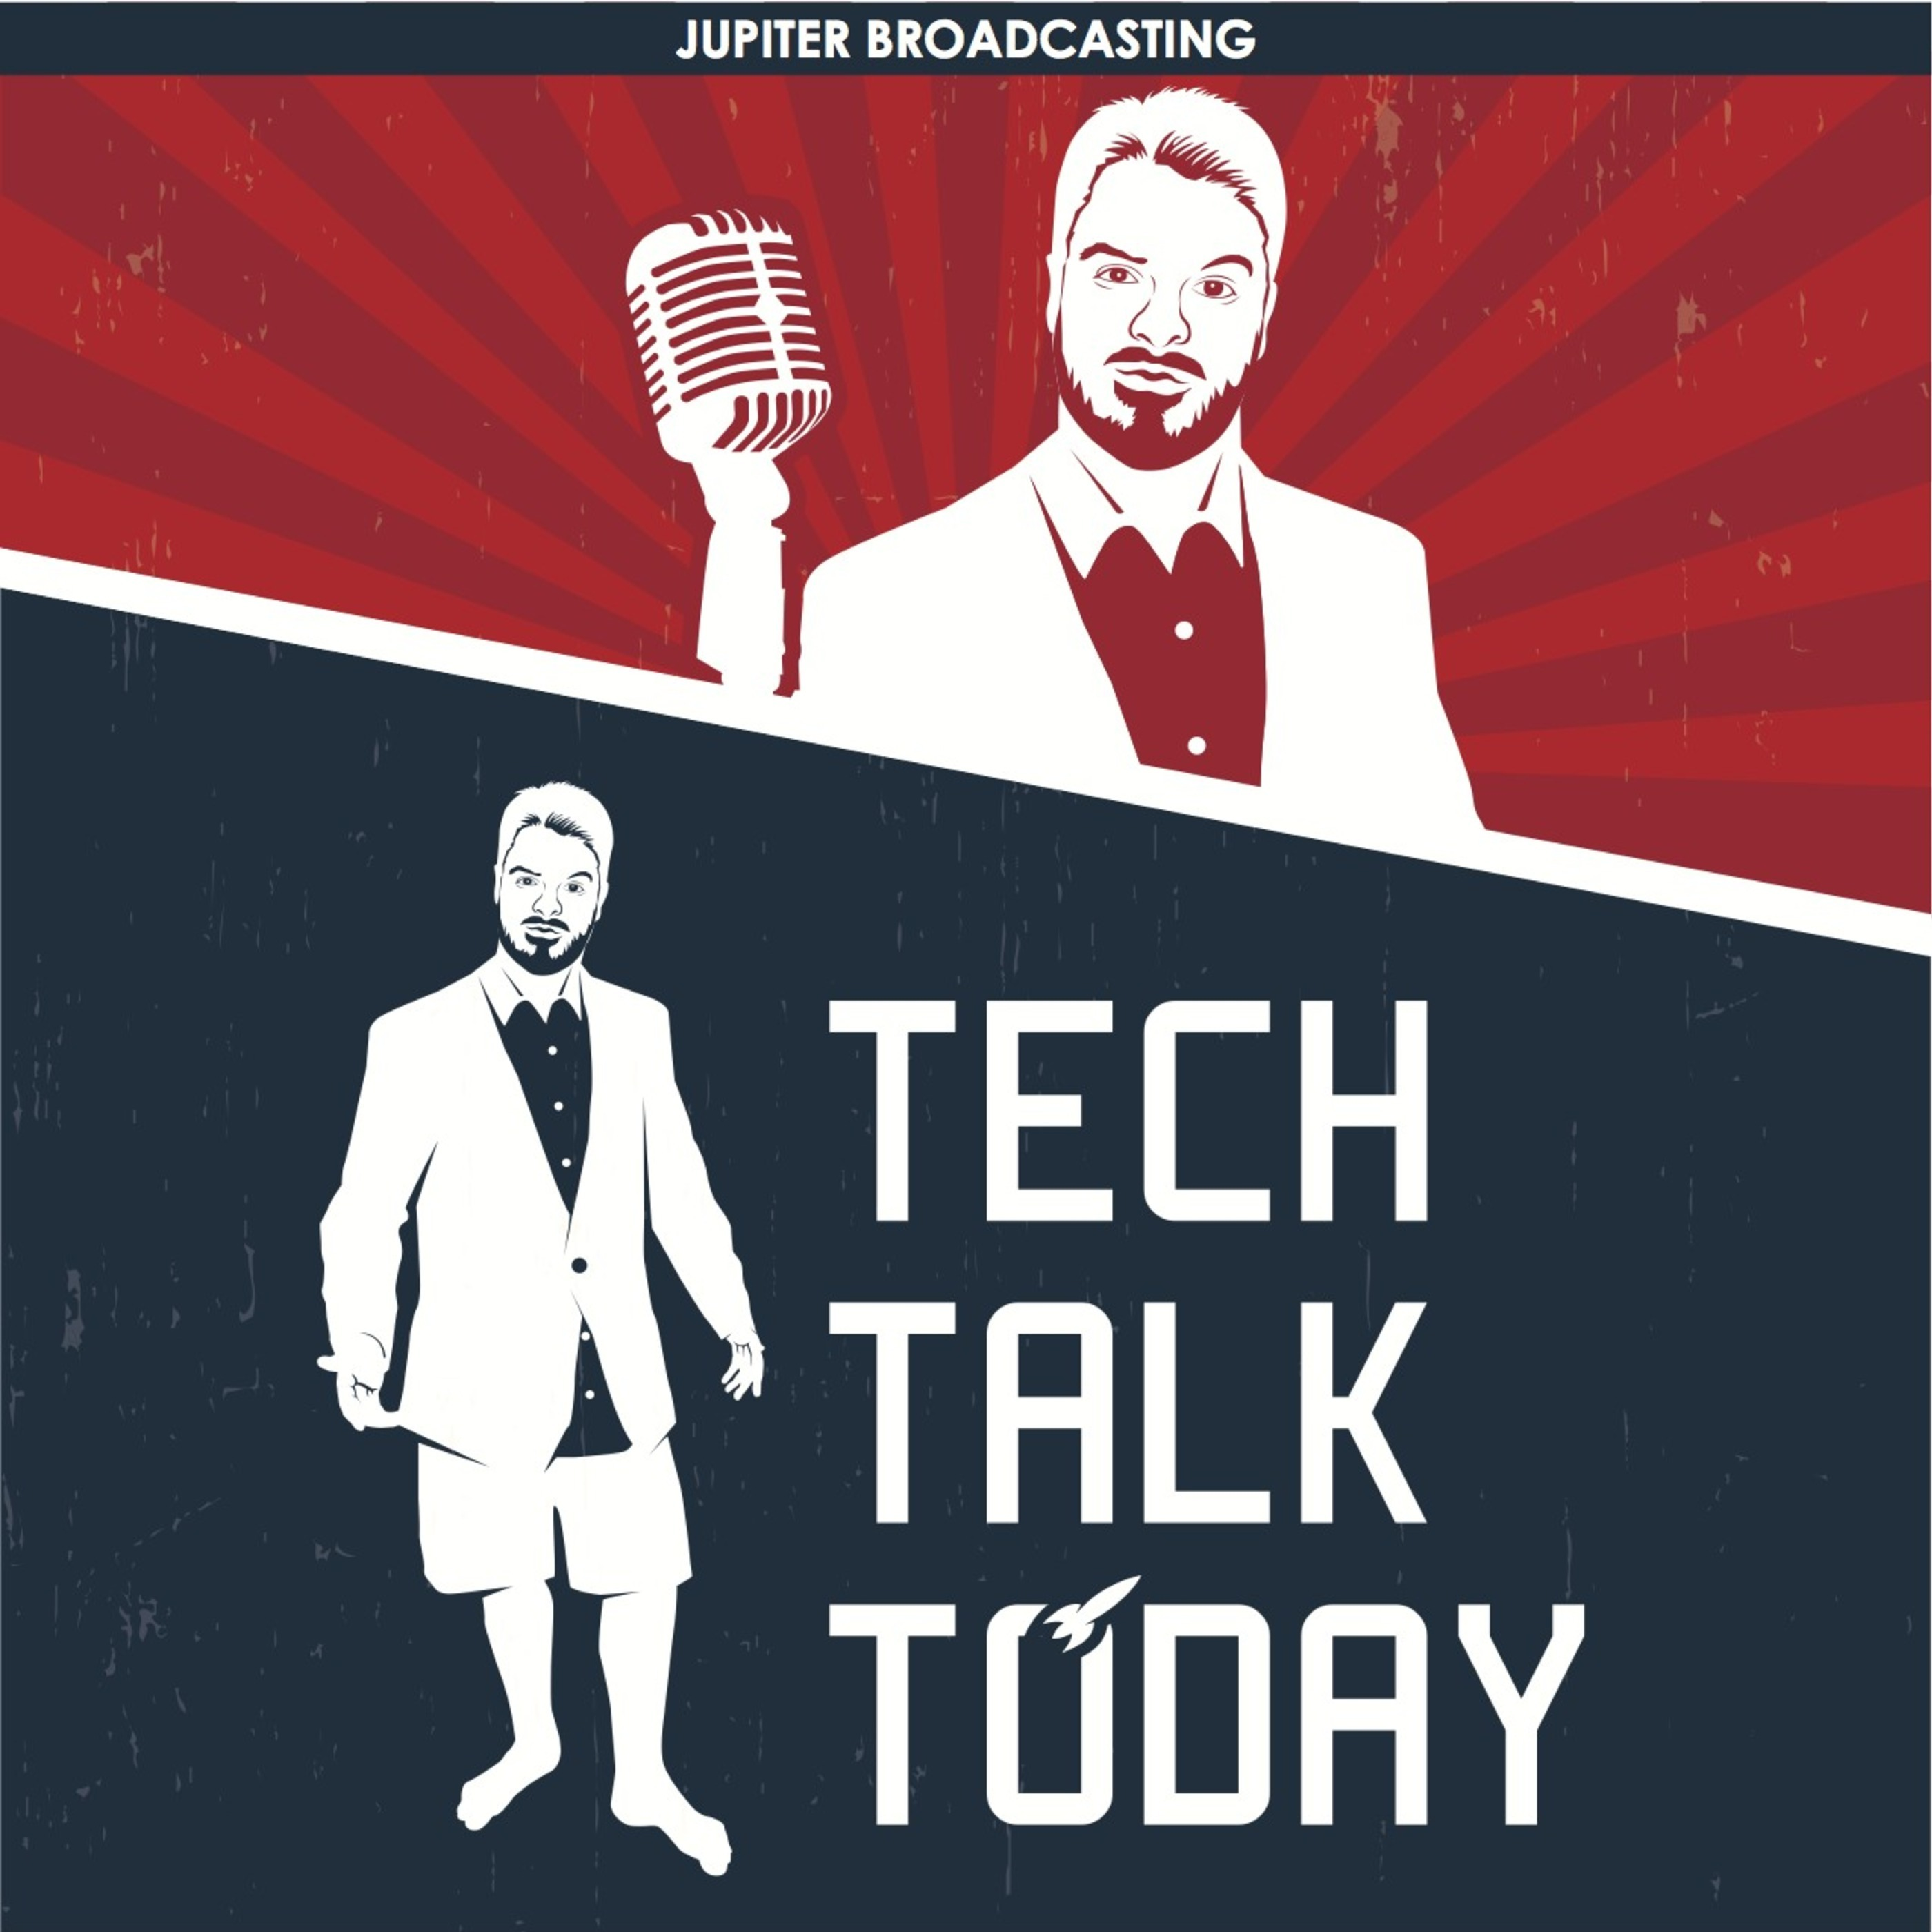 Episode 7: IPv6 The Road Never Taken | Tech Talk Today 160